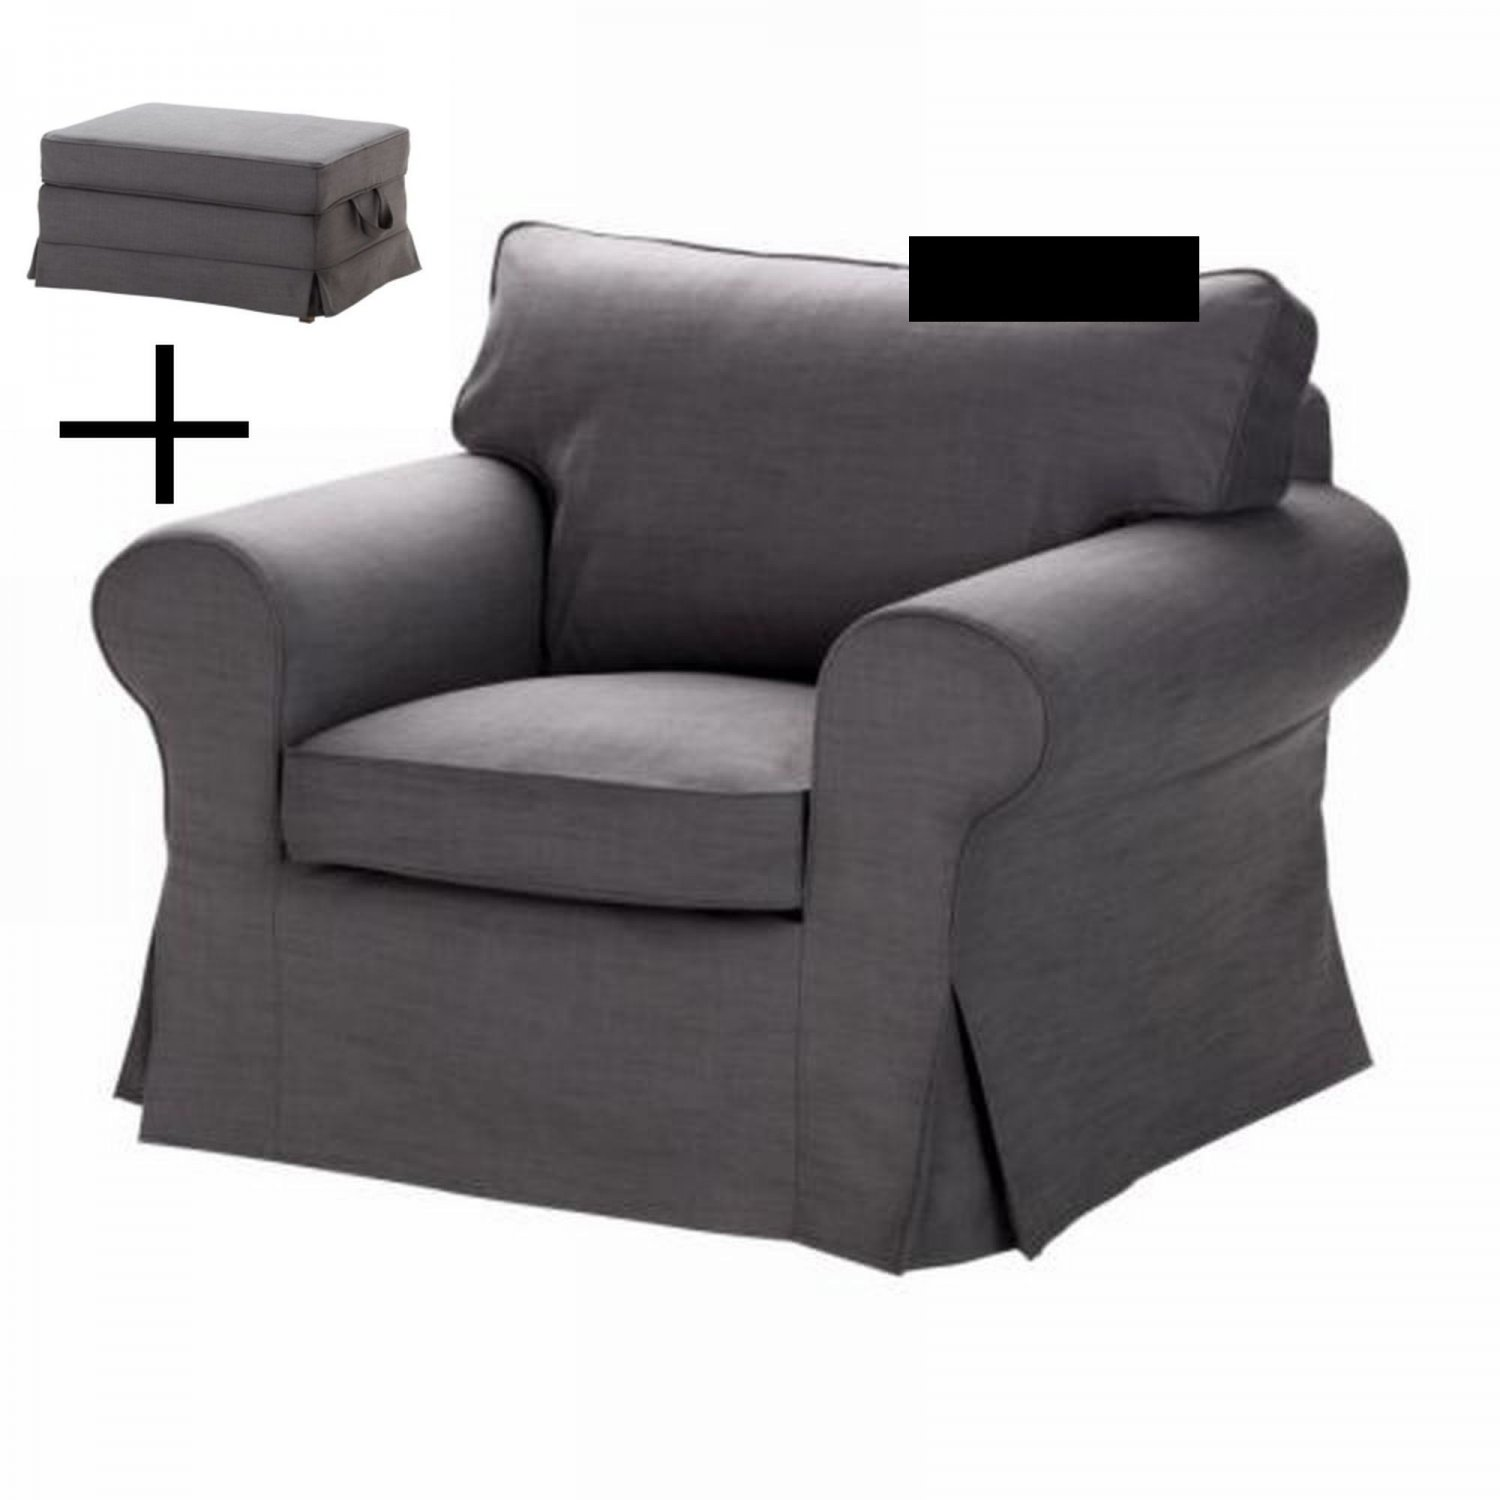 IKEA EKTORP Armchair And BROMMA Footstool COVER Chair